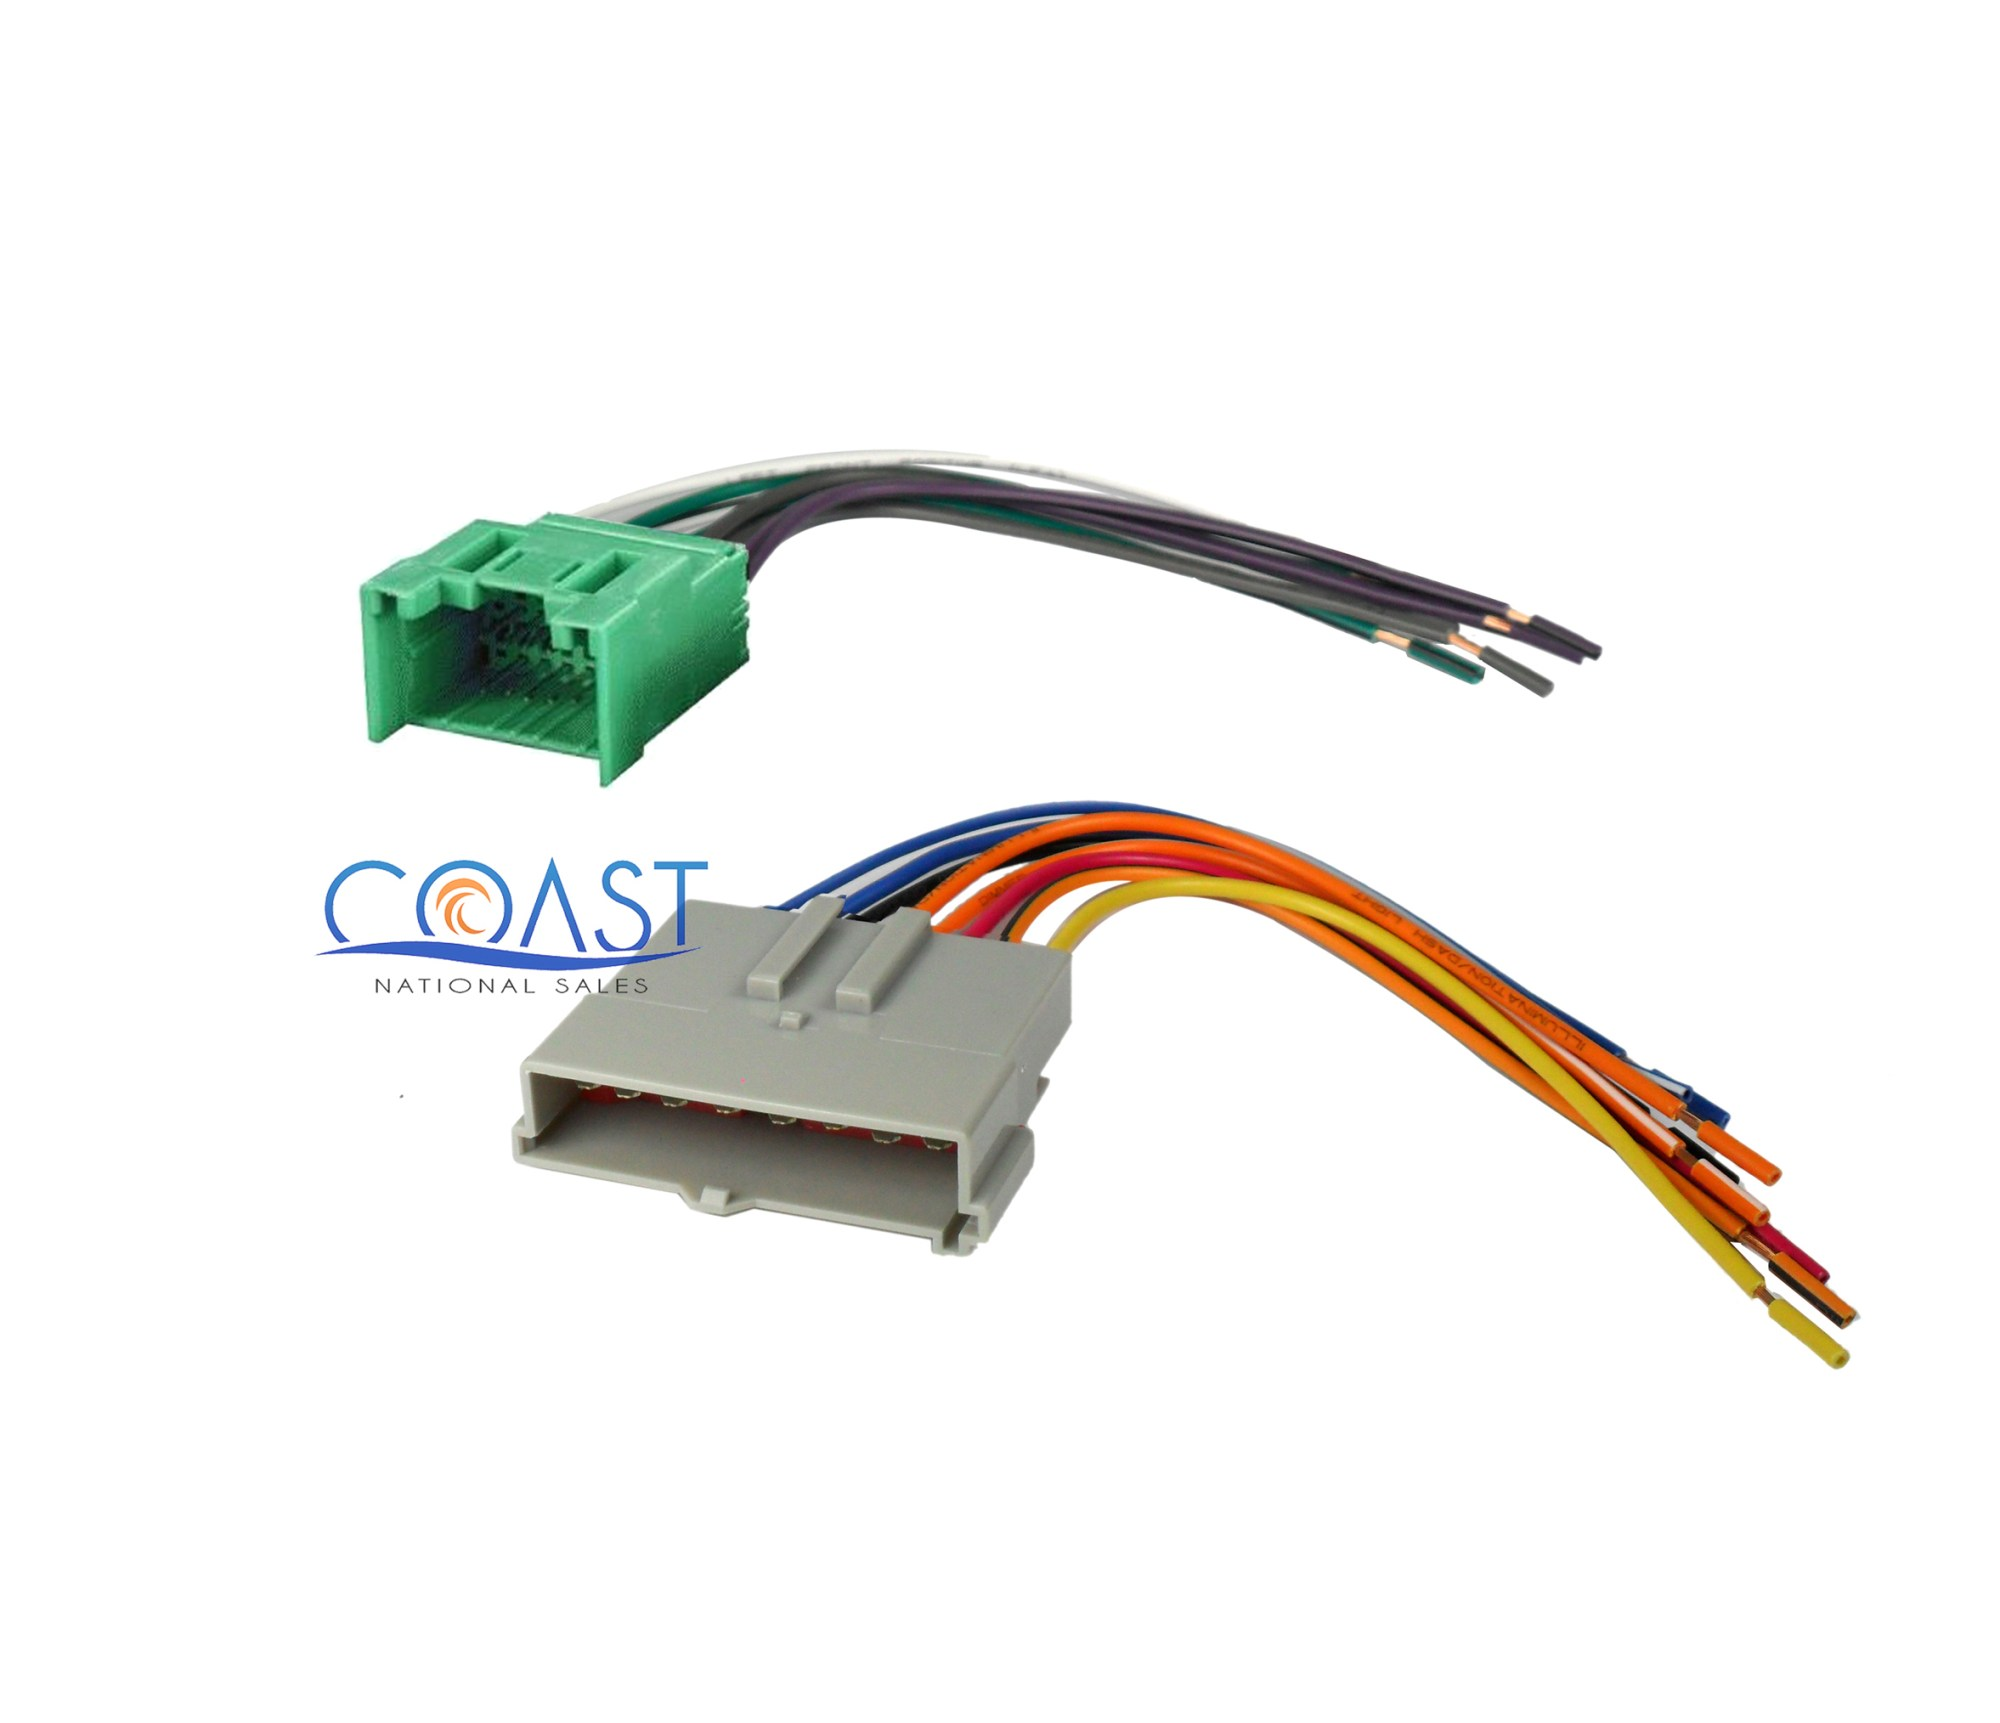 hight resolution of car stereo wire harness to factory harness for 1985 1998 ford lincoln mercury specifications